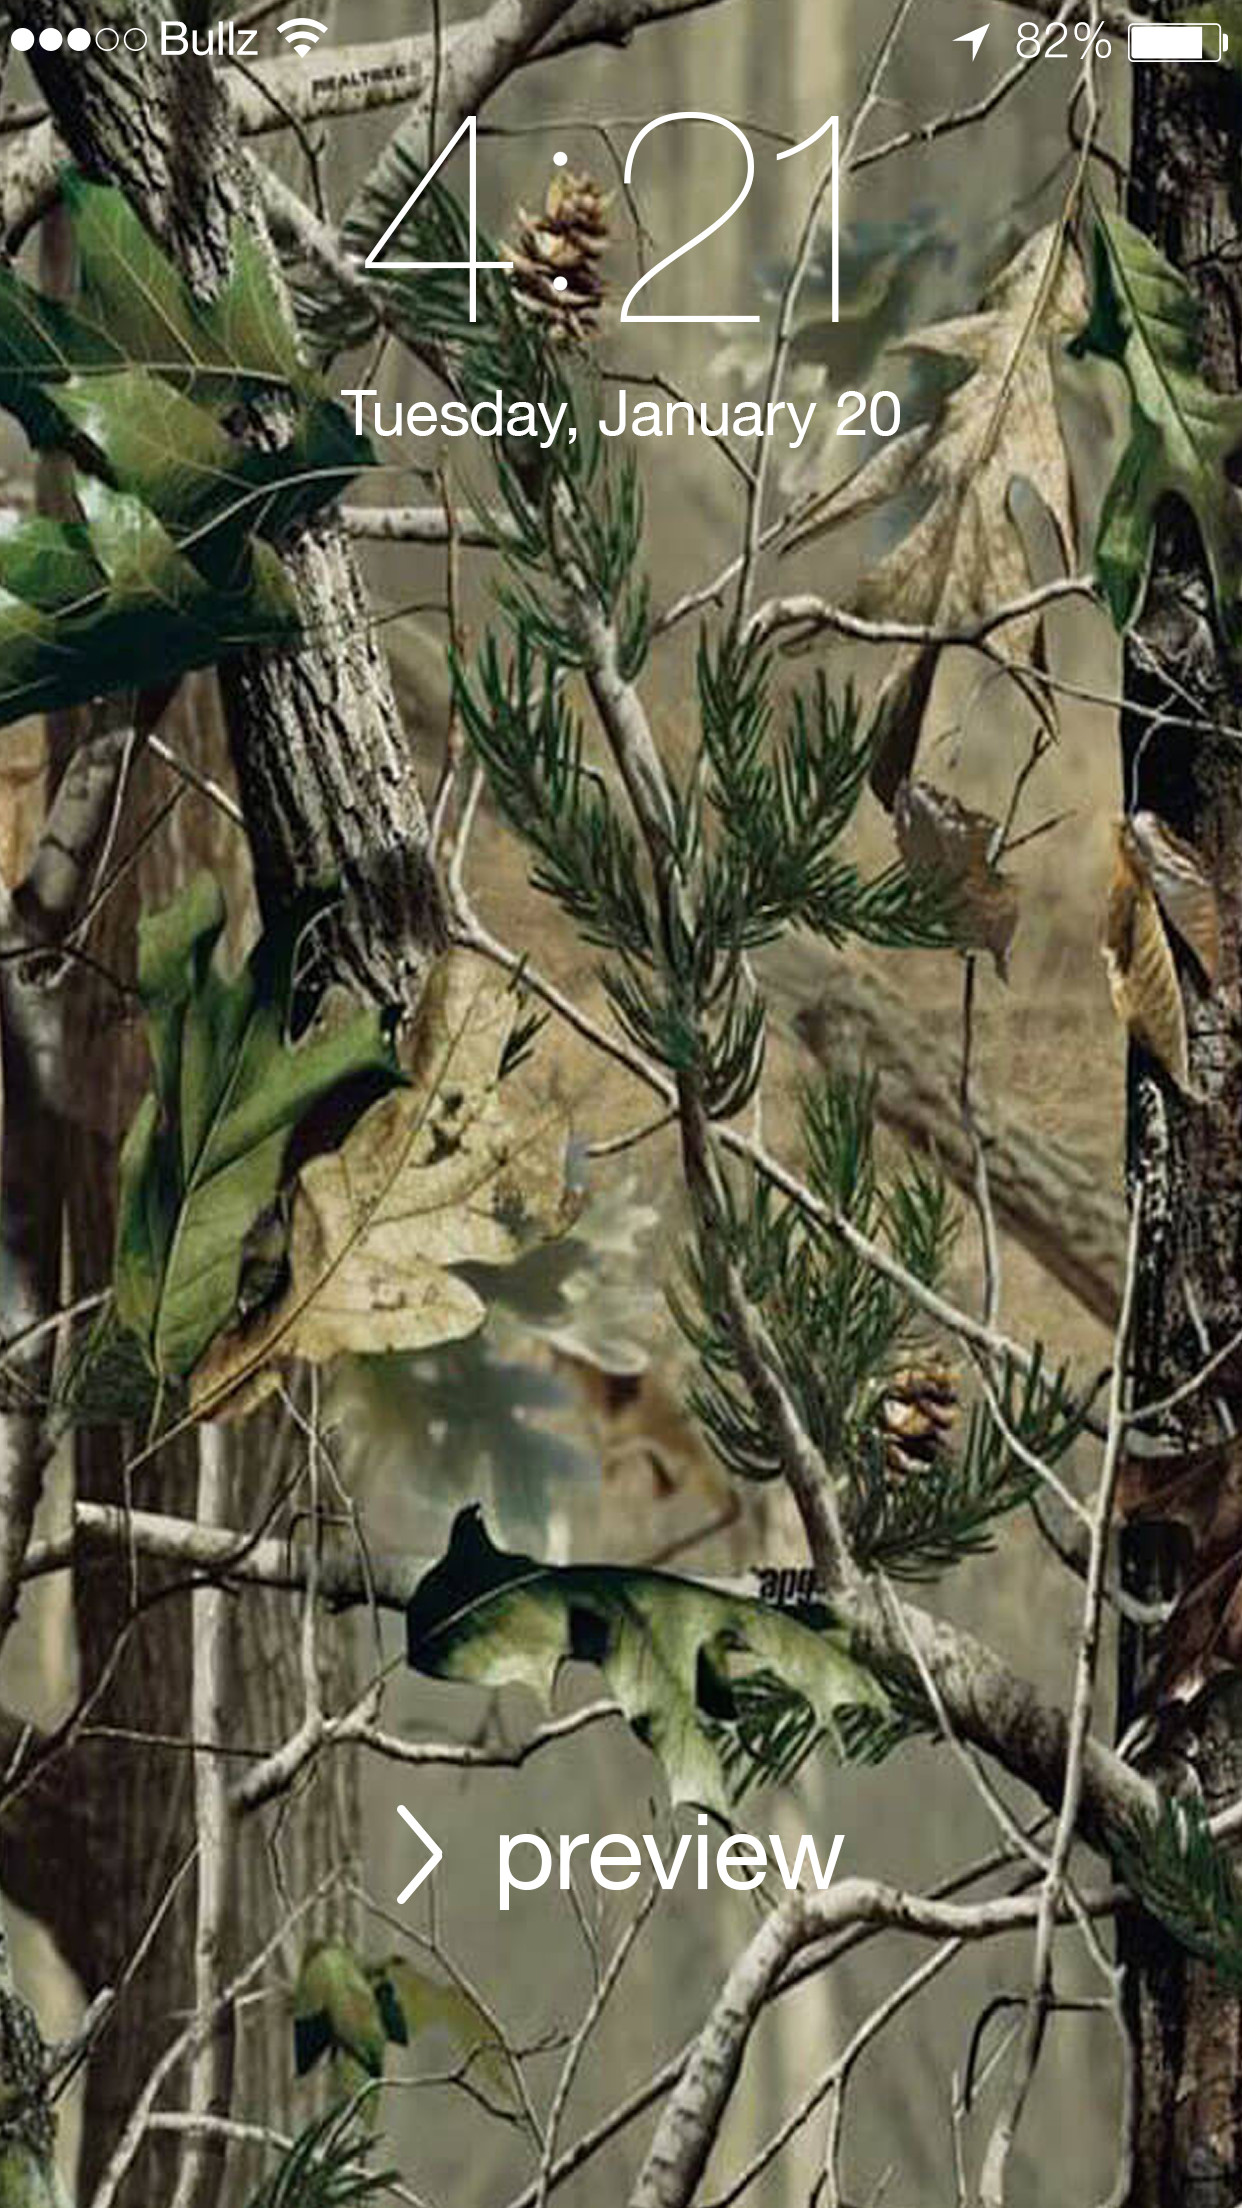 Camouflage : Live HD Camouflage Wallpapers, Photos